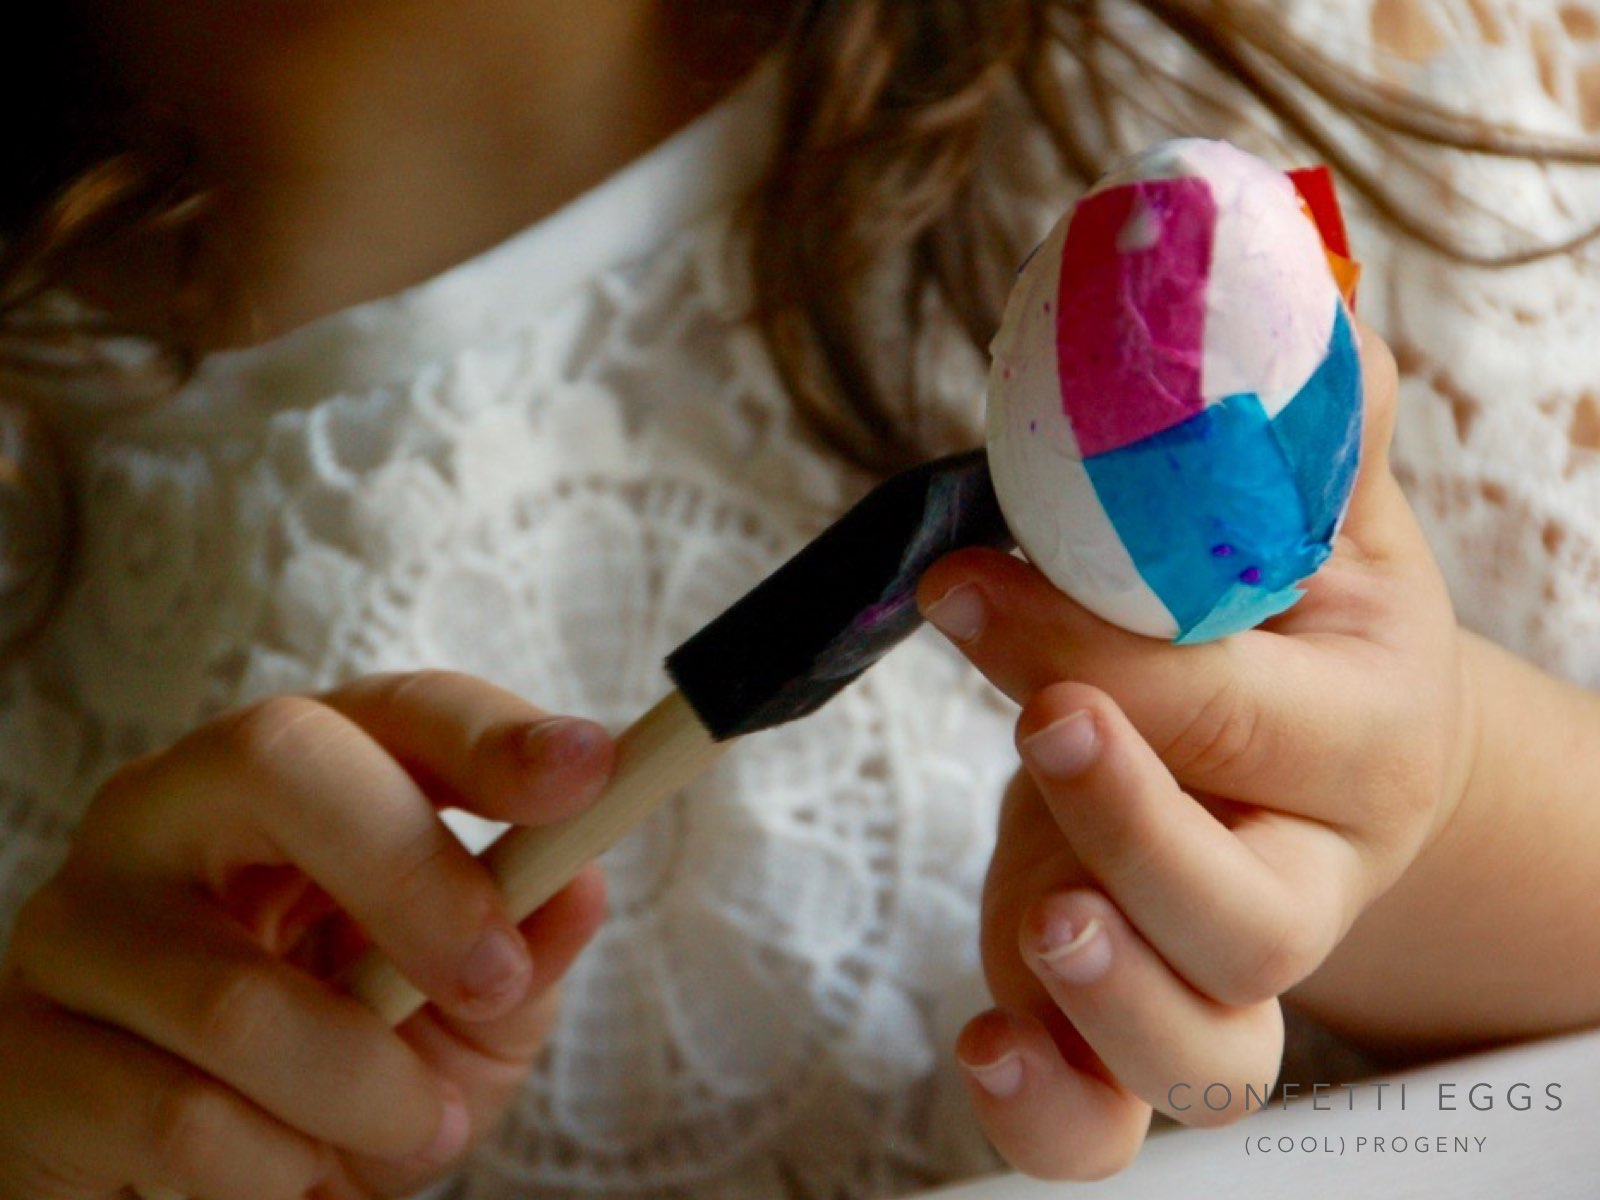 diy confetti easter eggs - (cool) progeny